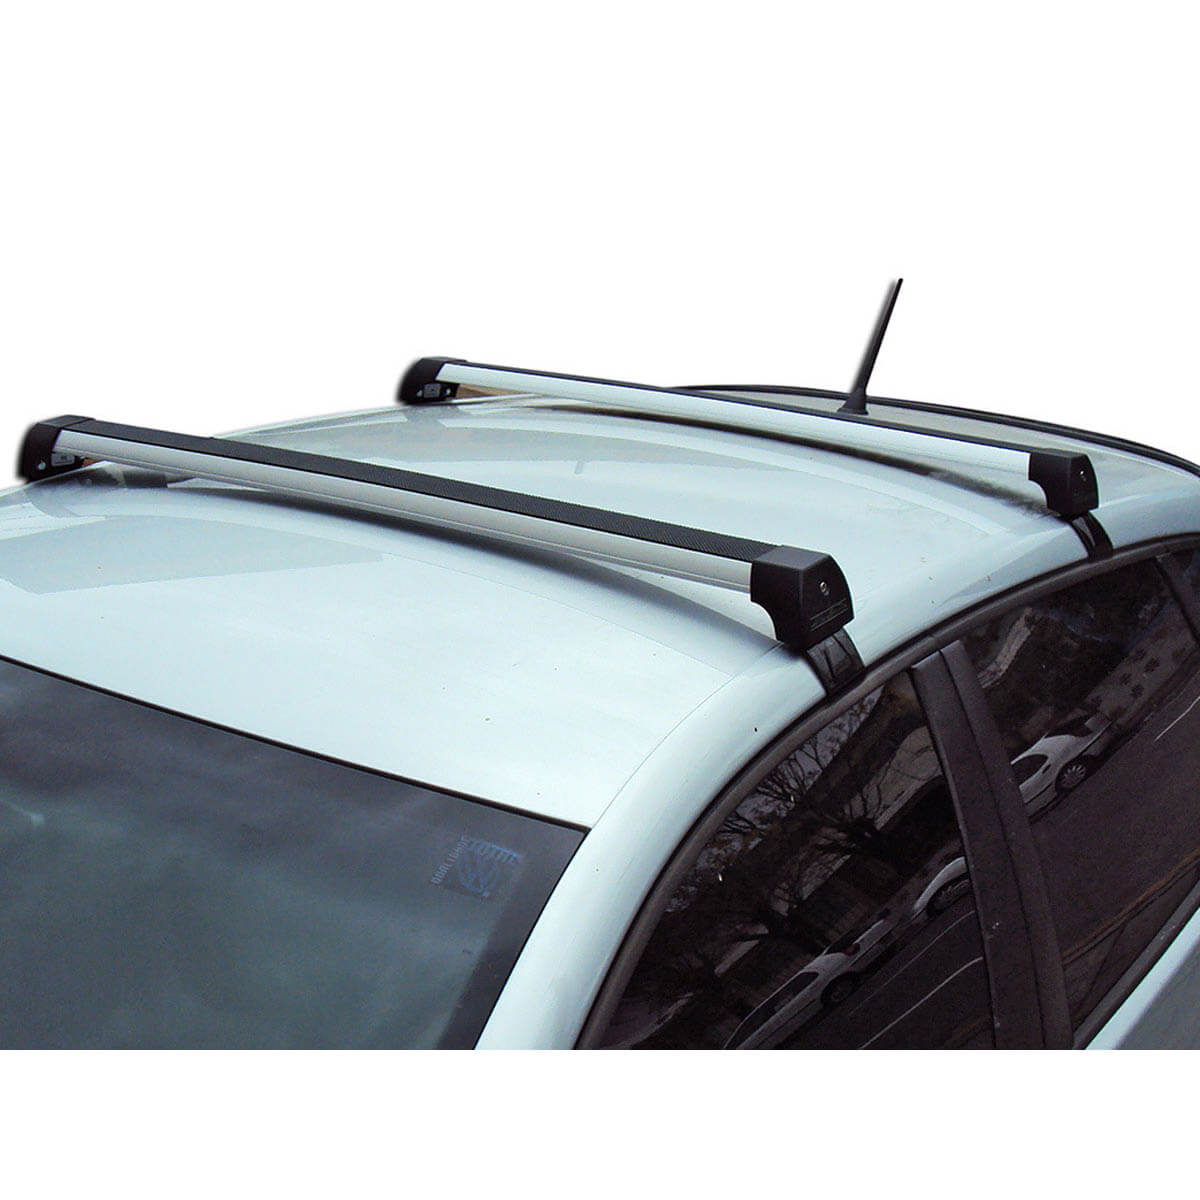 Rack de teto Fiesta hatch ou sedan 2003 a 2014 Long Life Sports anodizado